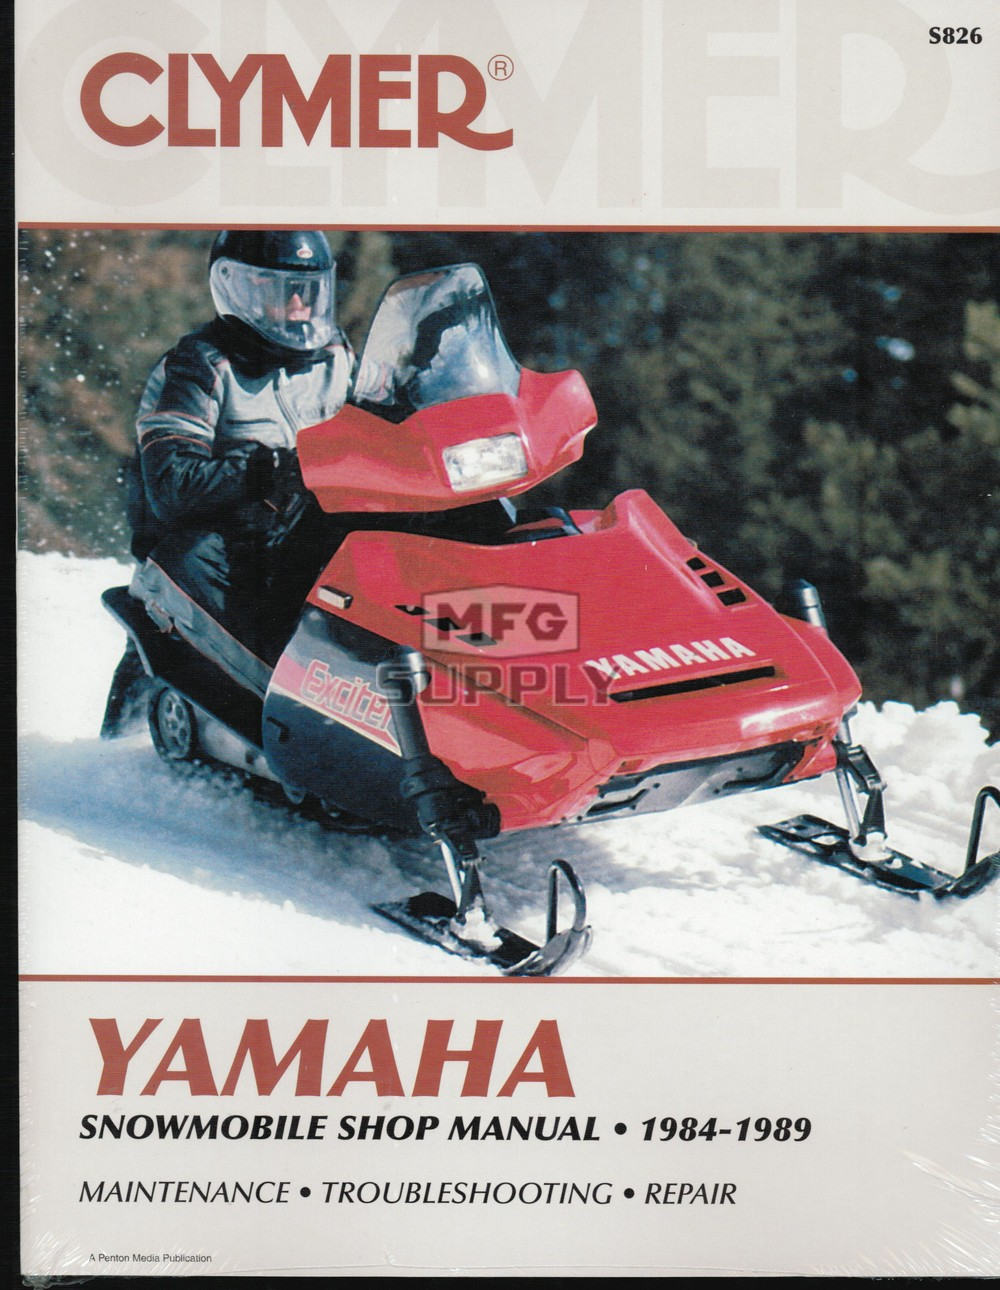 cs826 84 89 yamaha snowmobile shop manual snowmobile parts cs826 84 89 yamaha snowmobile shop manual